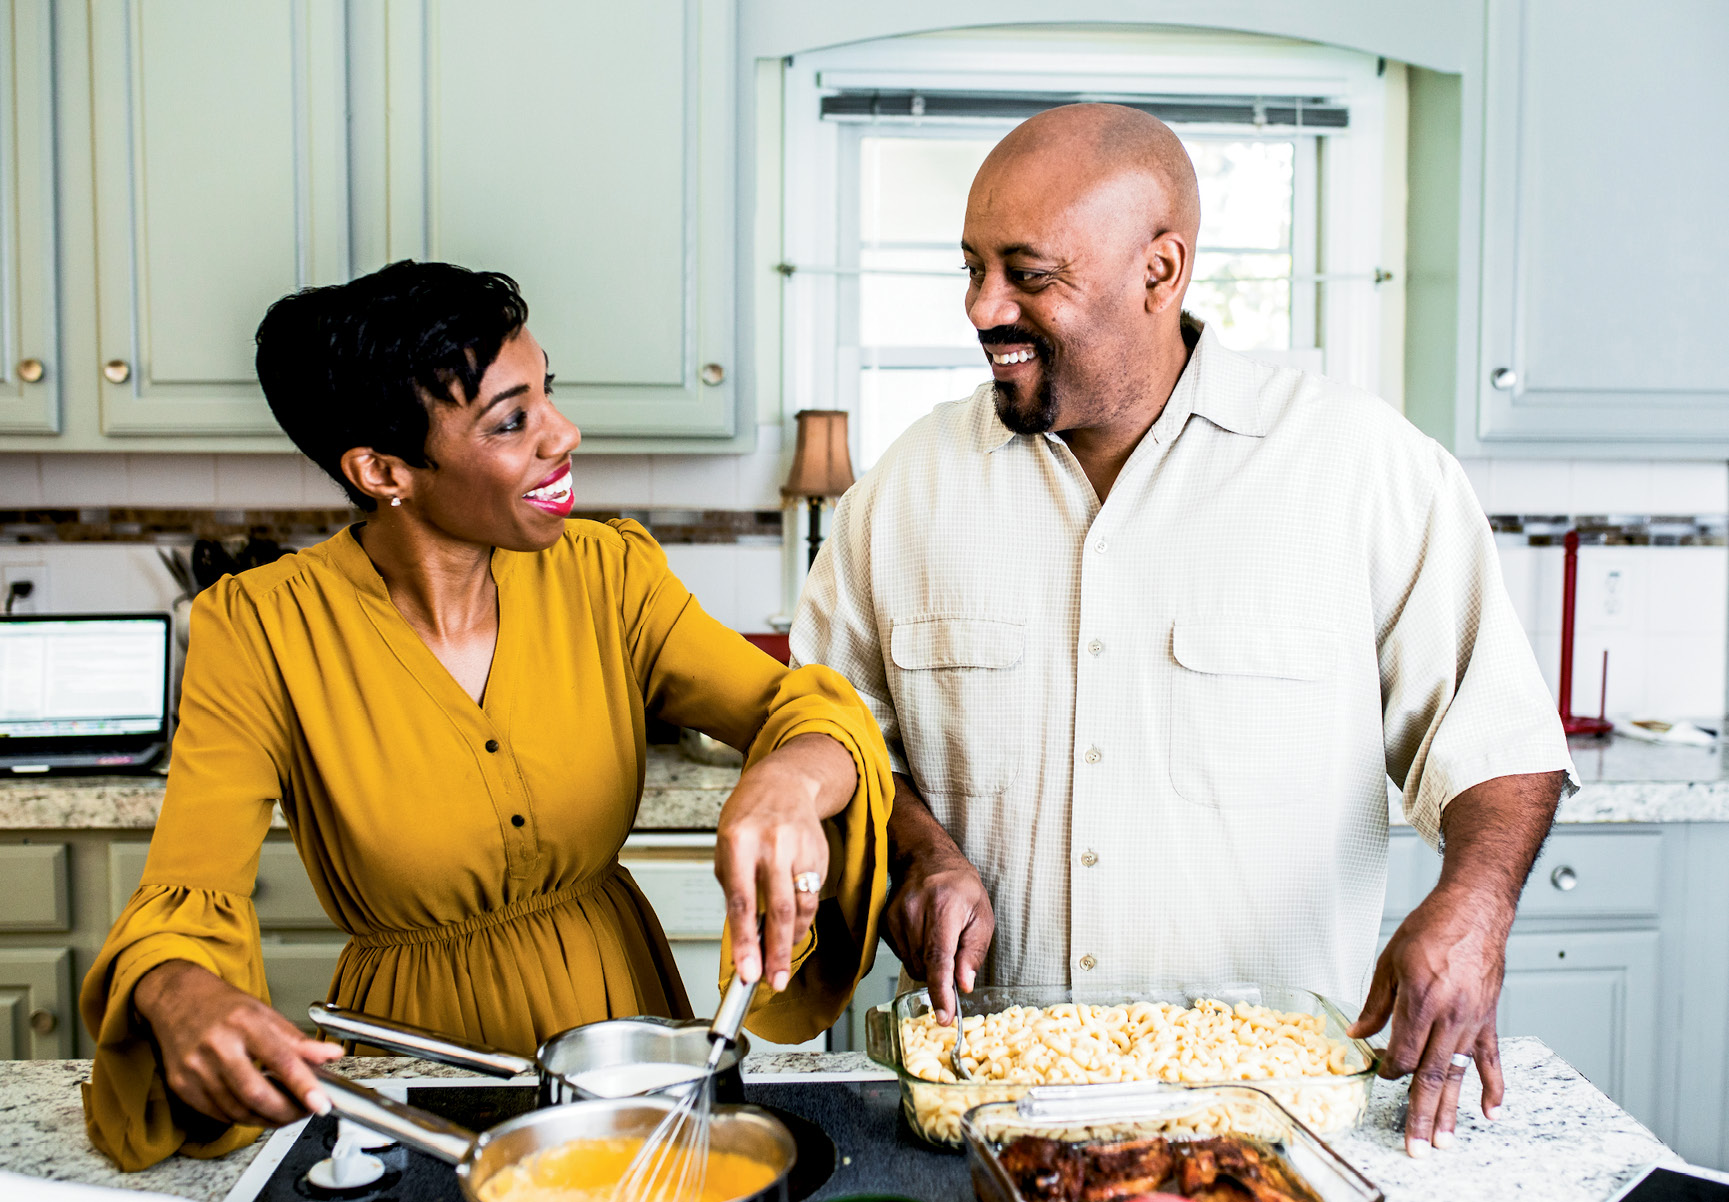 Monique and Chevalo Wilsondebriano met in New York, but they've found a home—and a burger following—in the Charleston community.